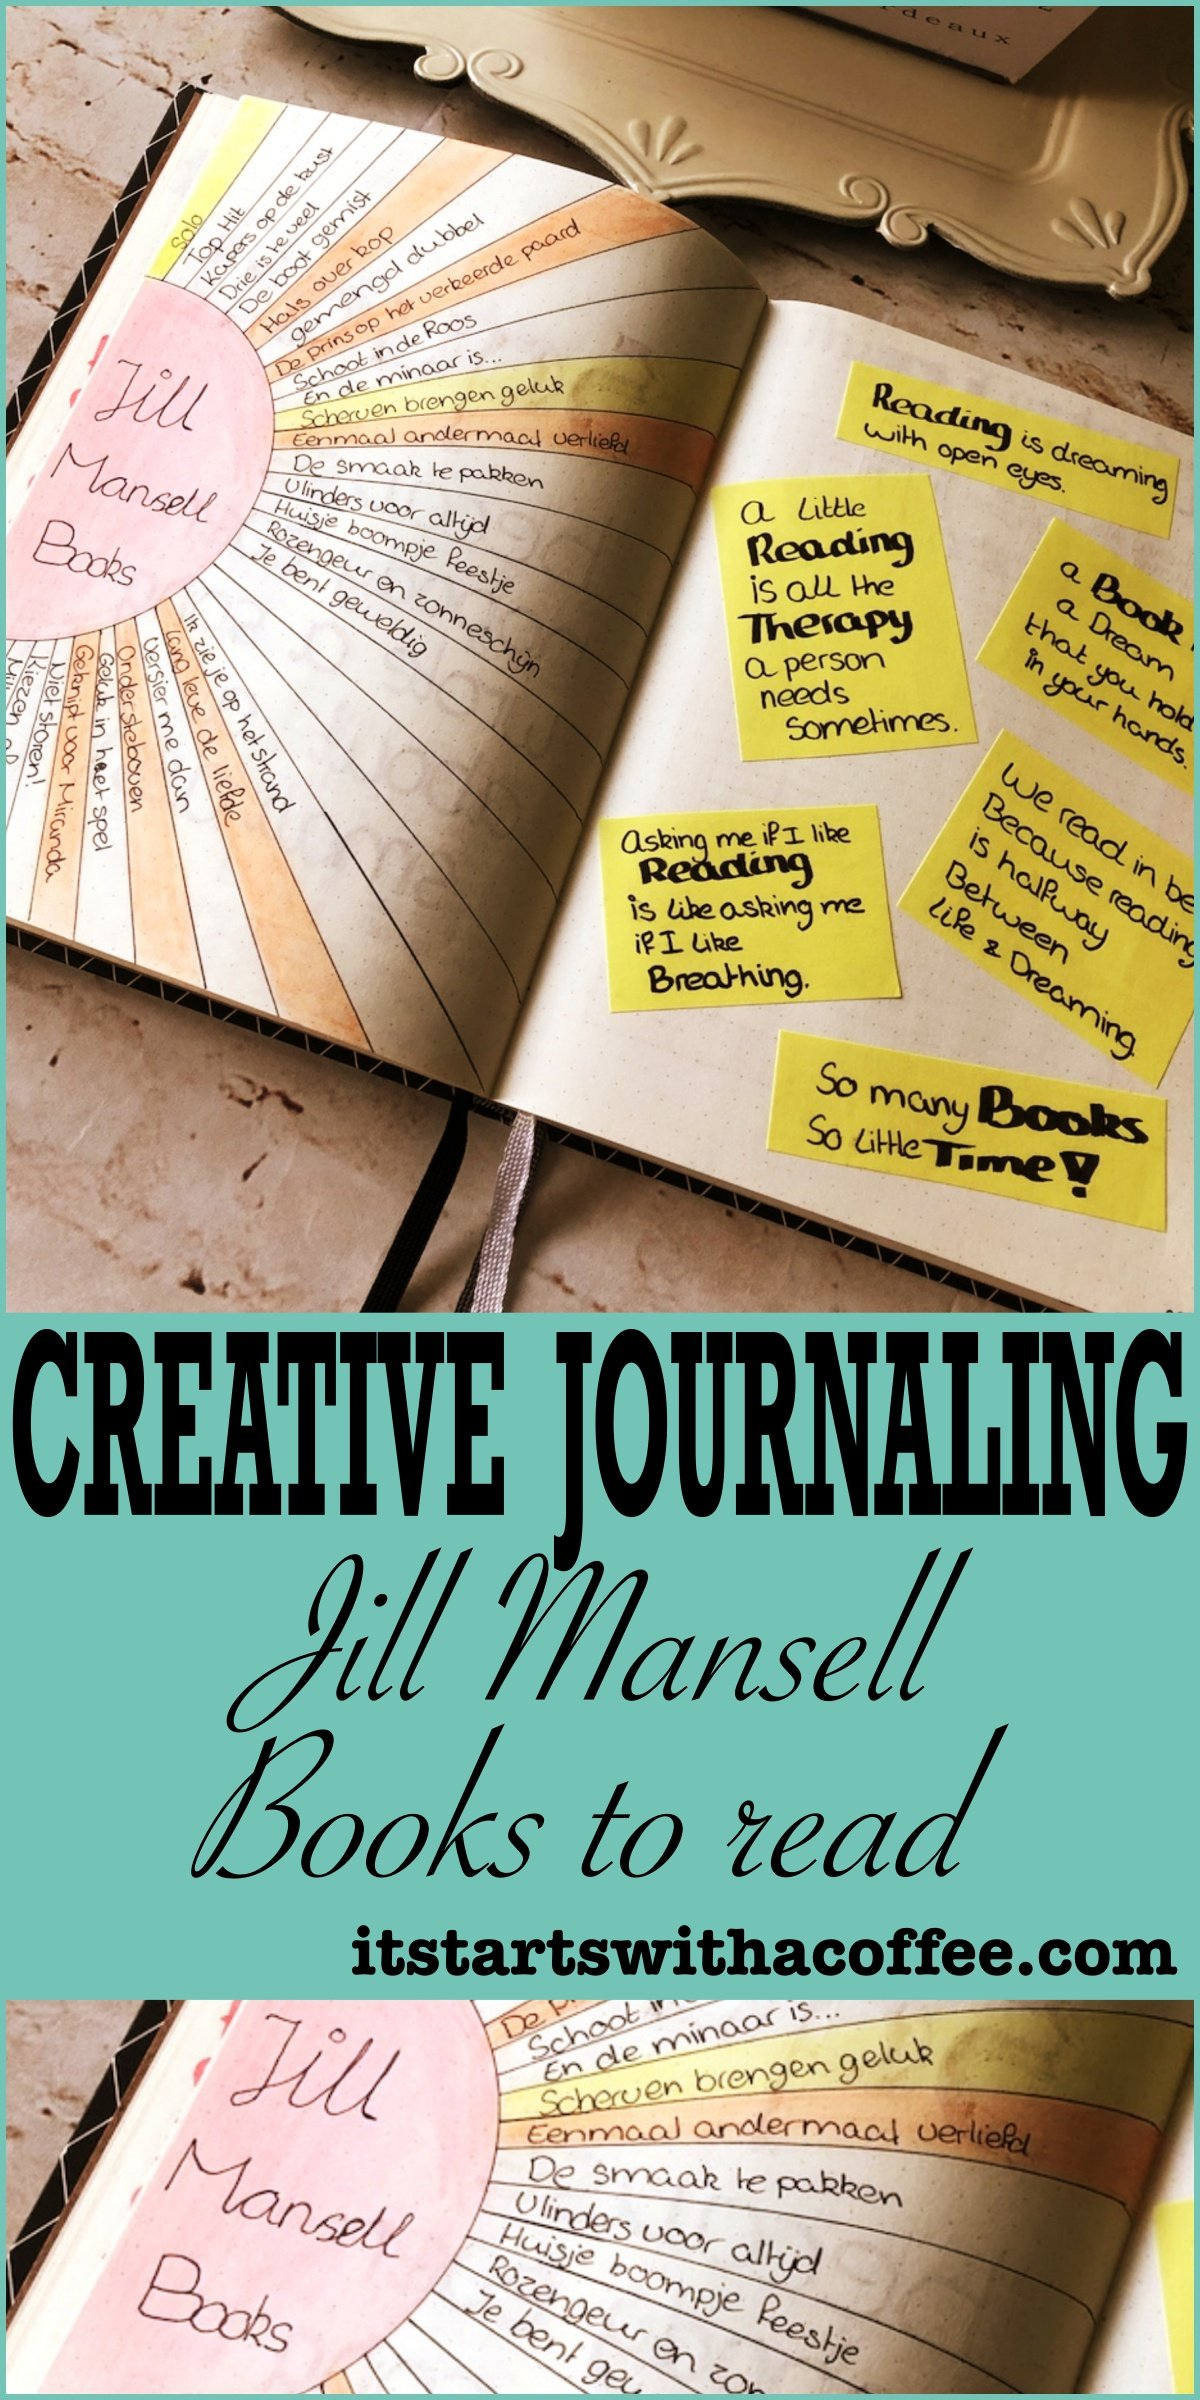 Creative journaling — Jill Mansell books to read - itstartswithacoffee.com #creativejournaling #bujoaddict #journaling #bookstoread #JillMansell